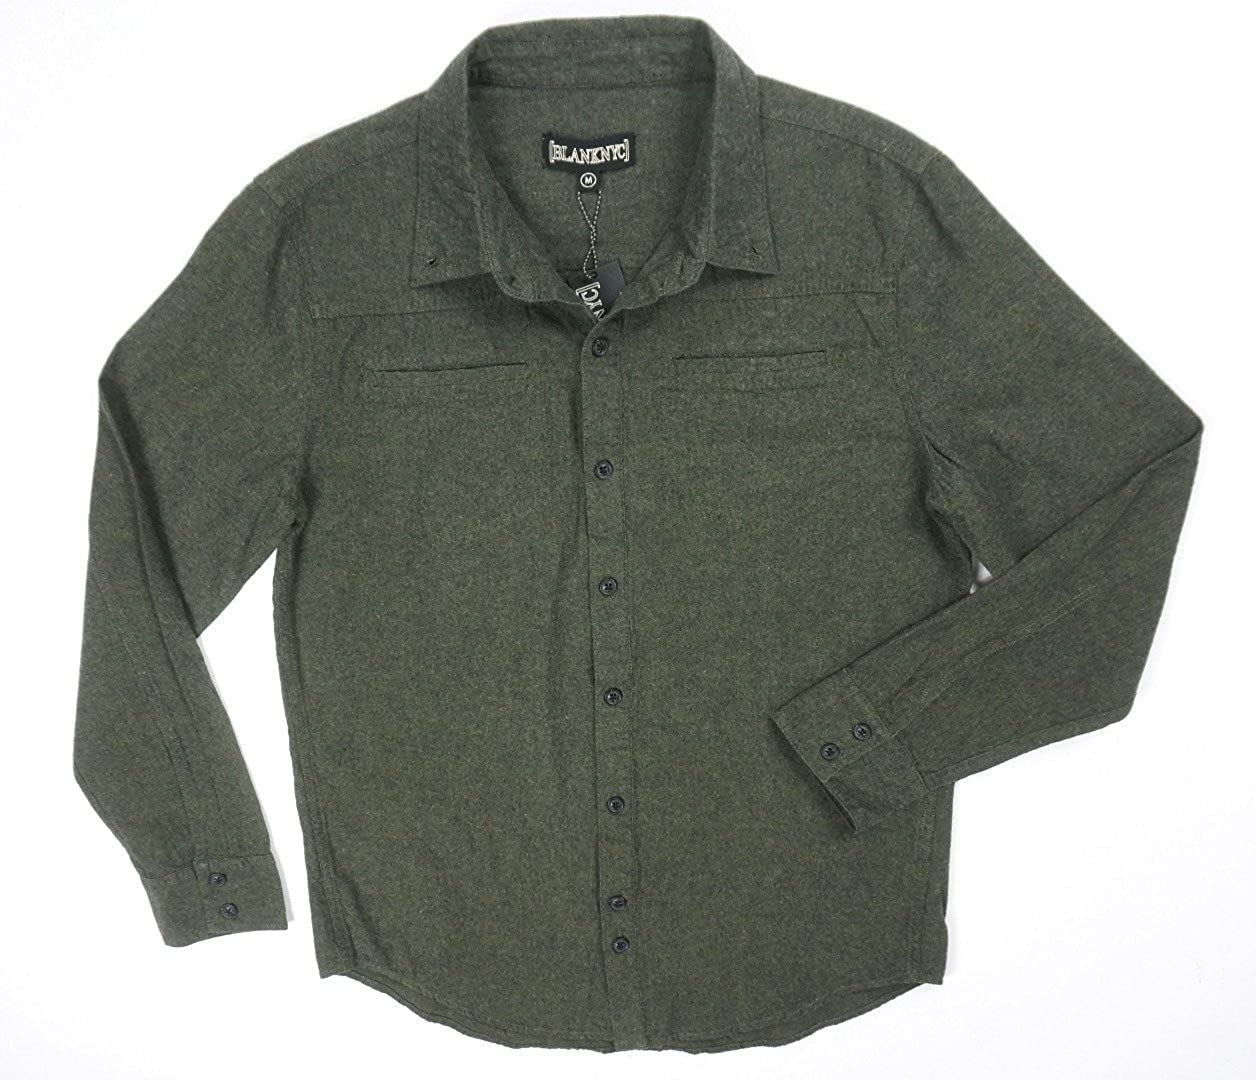 BLANKNYC New DK Green Supermodel Magnet Double Pocket Casual Dress Shirt Size L